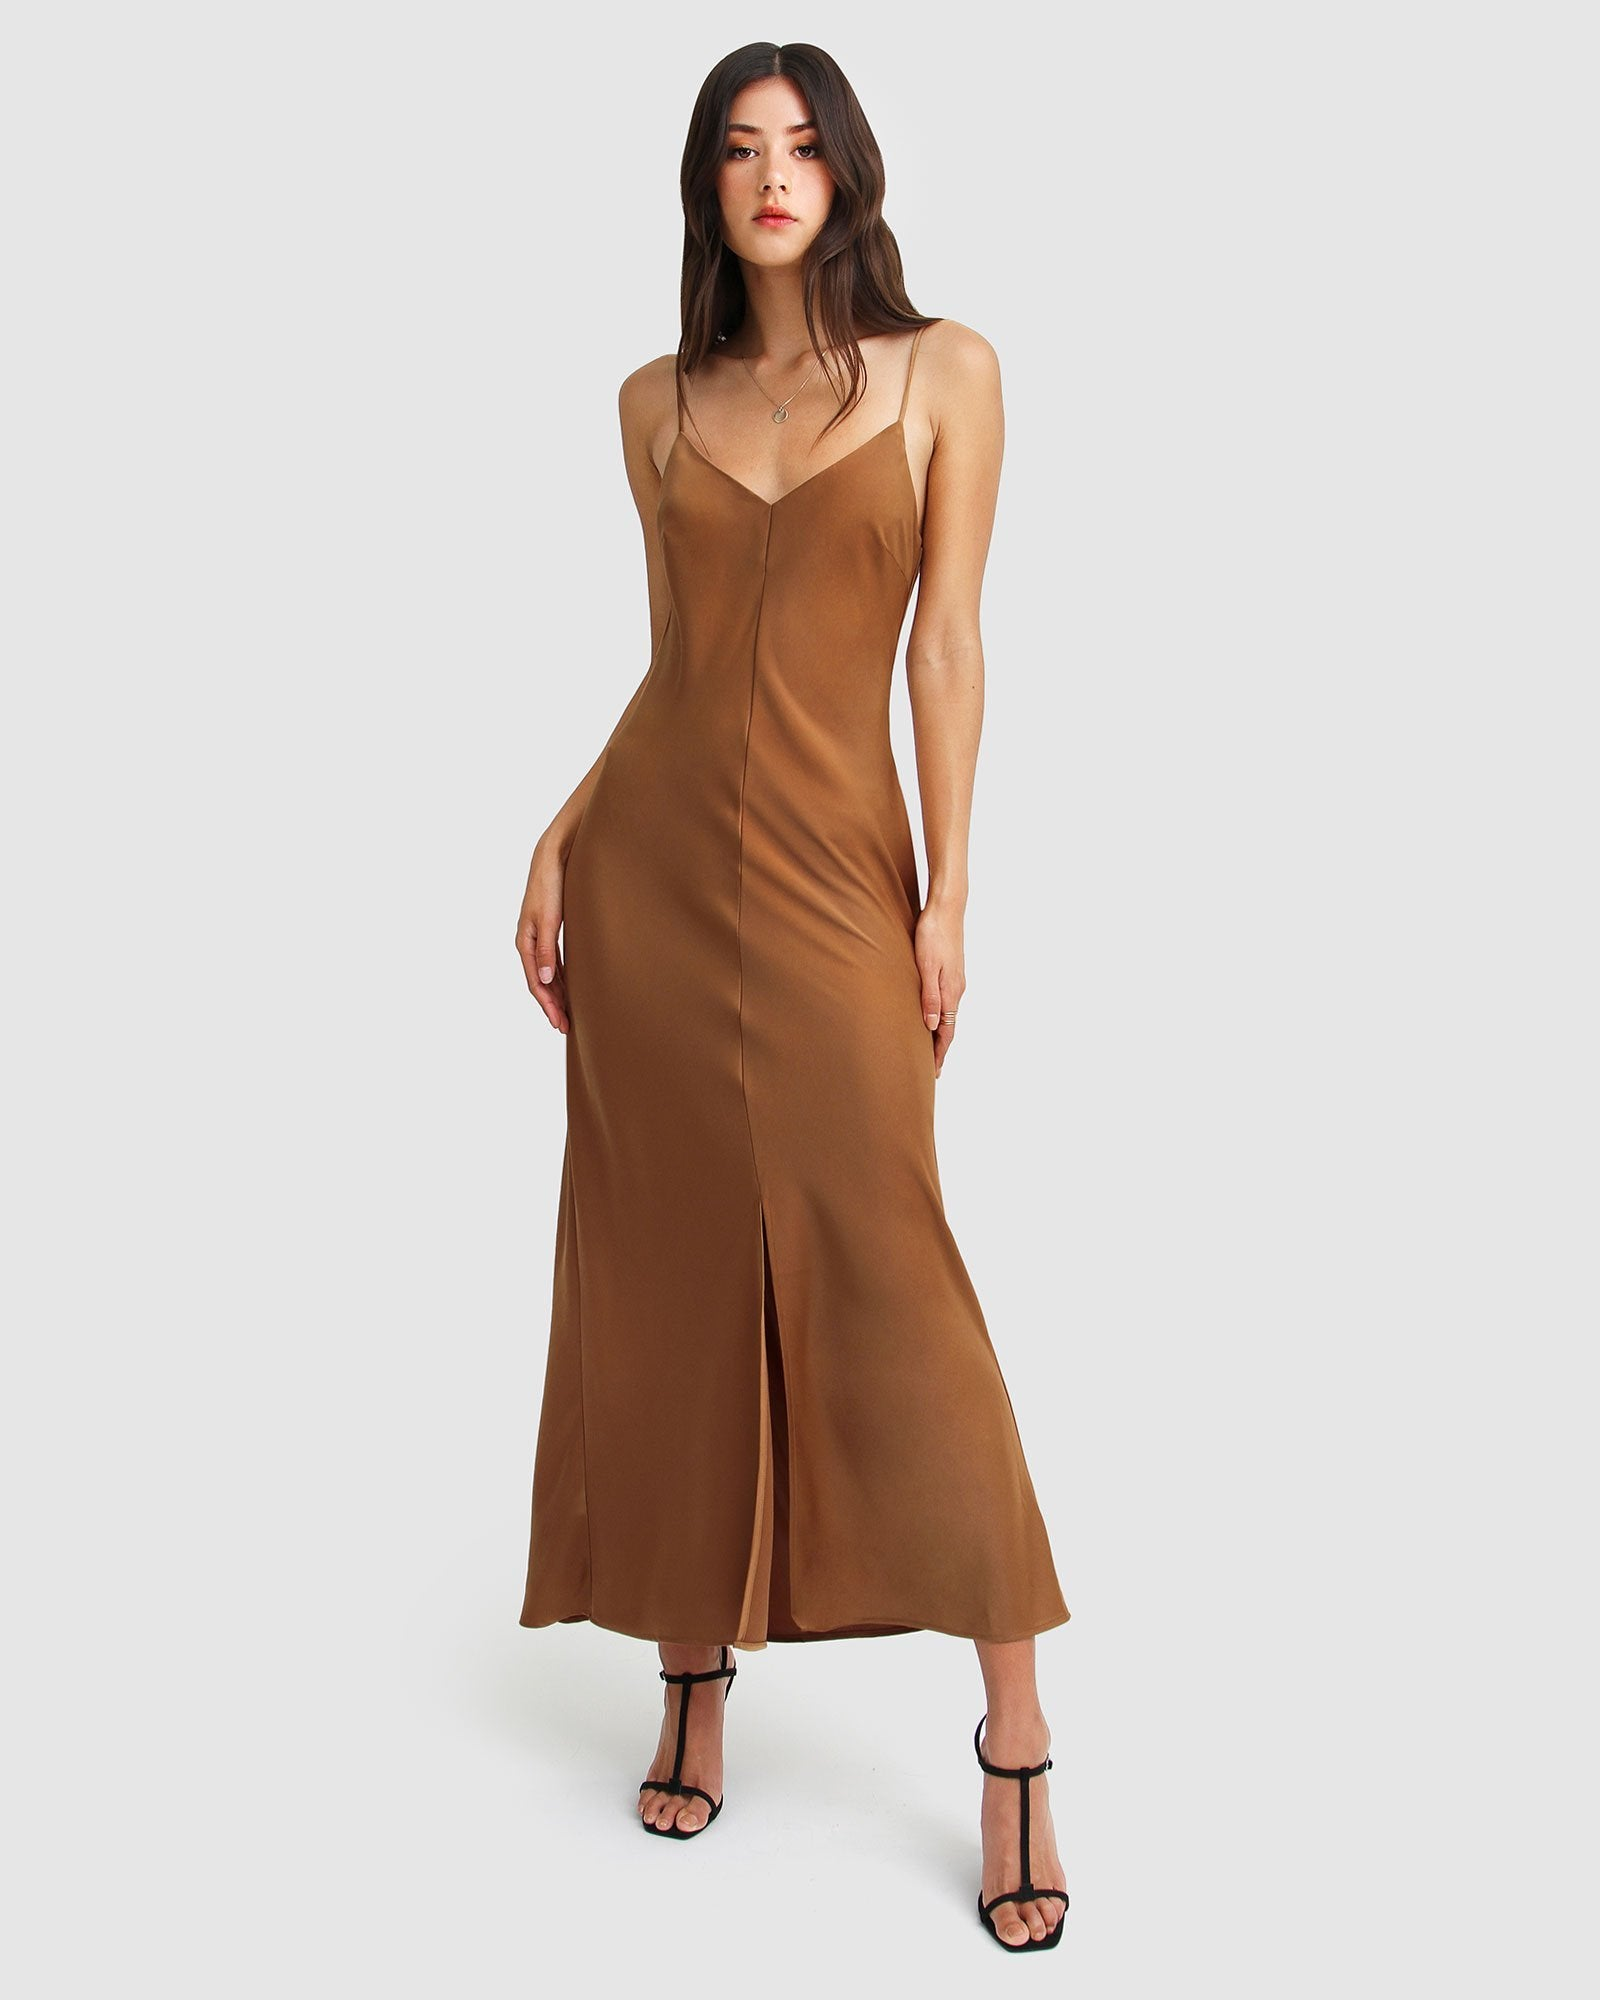 Slip Up Maxi Dress - Copper